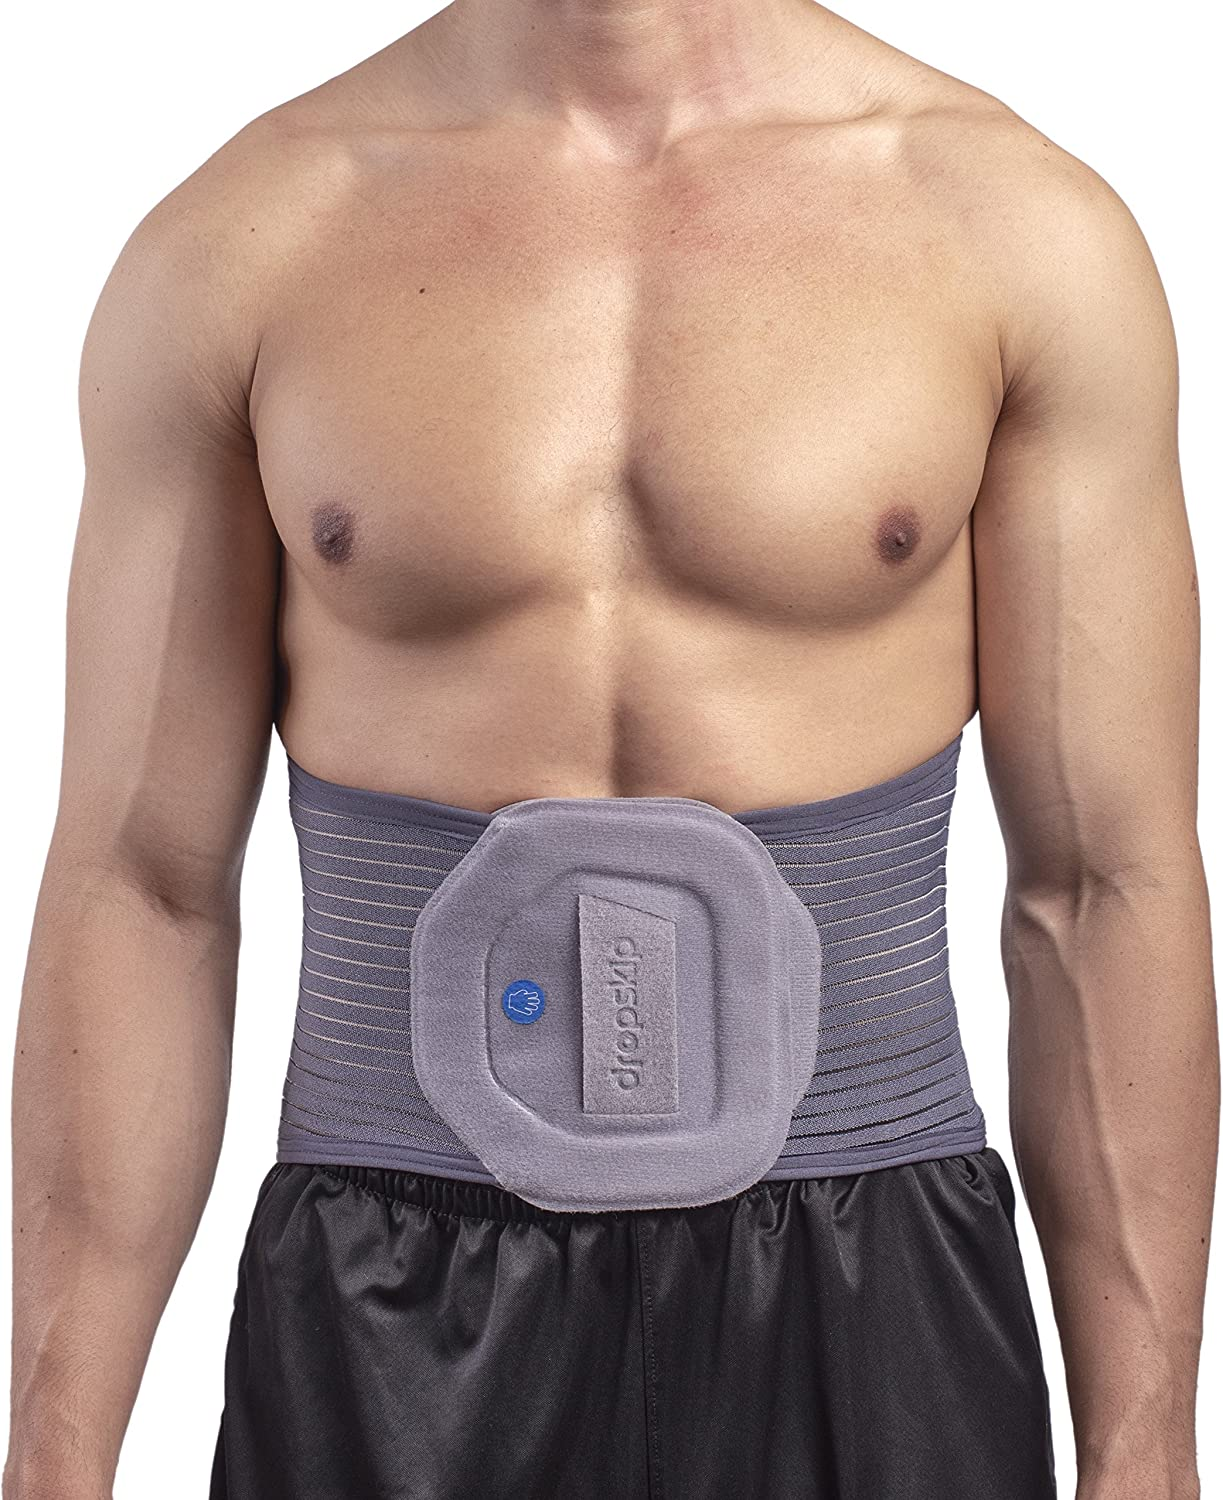 Back Brace Back Support Belt – Breathable Mesh with Removable Heating and Cooling Gel Pack, Lumbar Support Brace for Back Pain, Sciatica, Scoliosis. Great for Walking, Sitting, Sports, Work [Large]